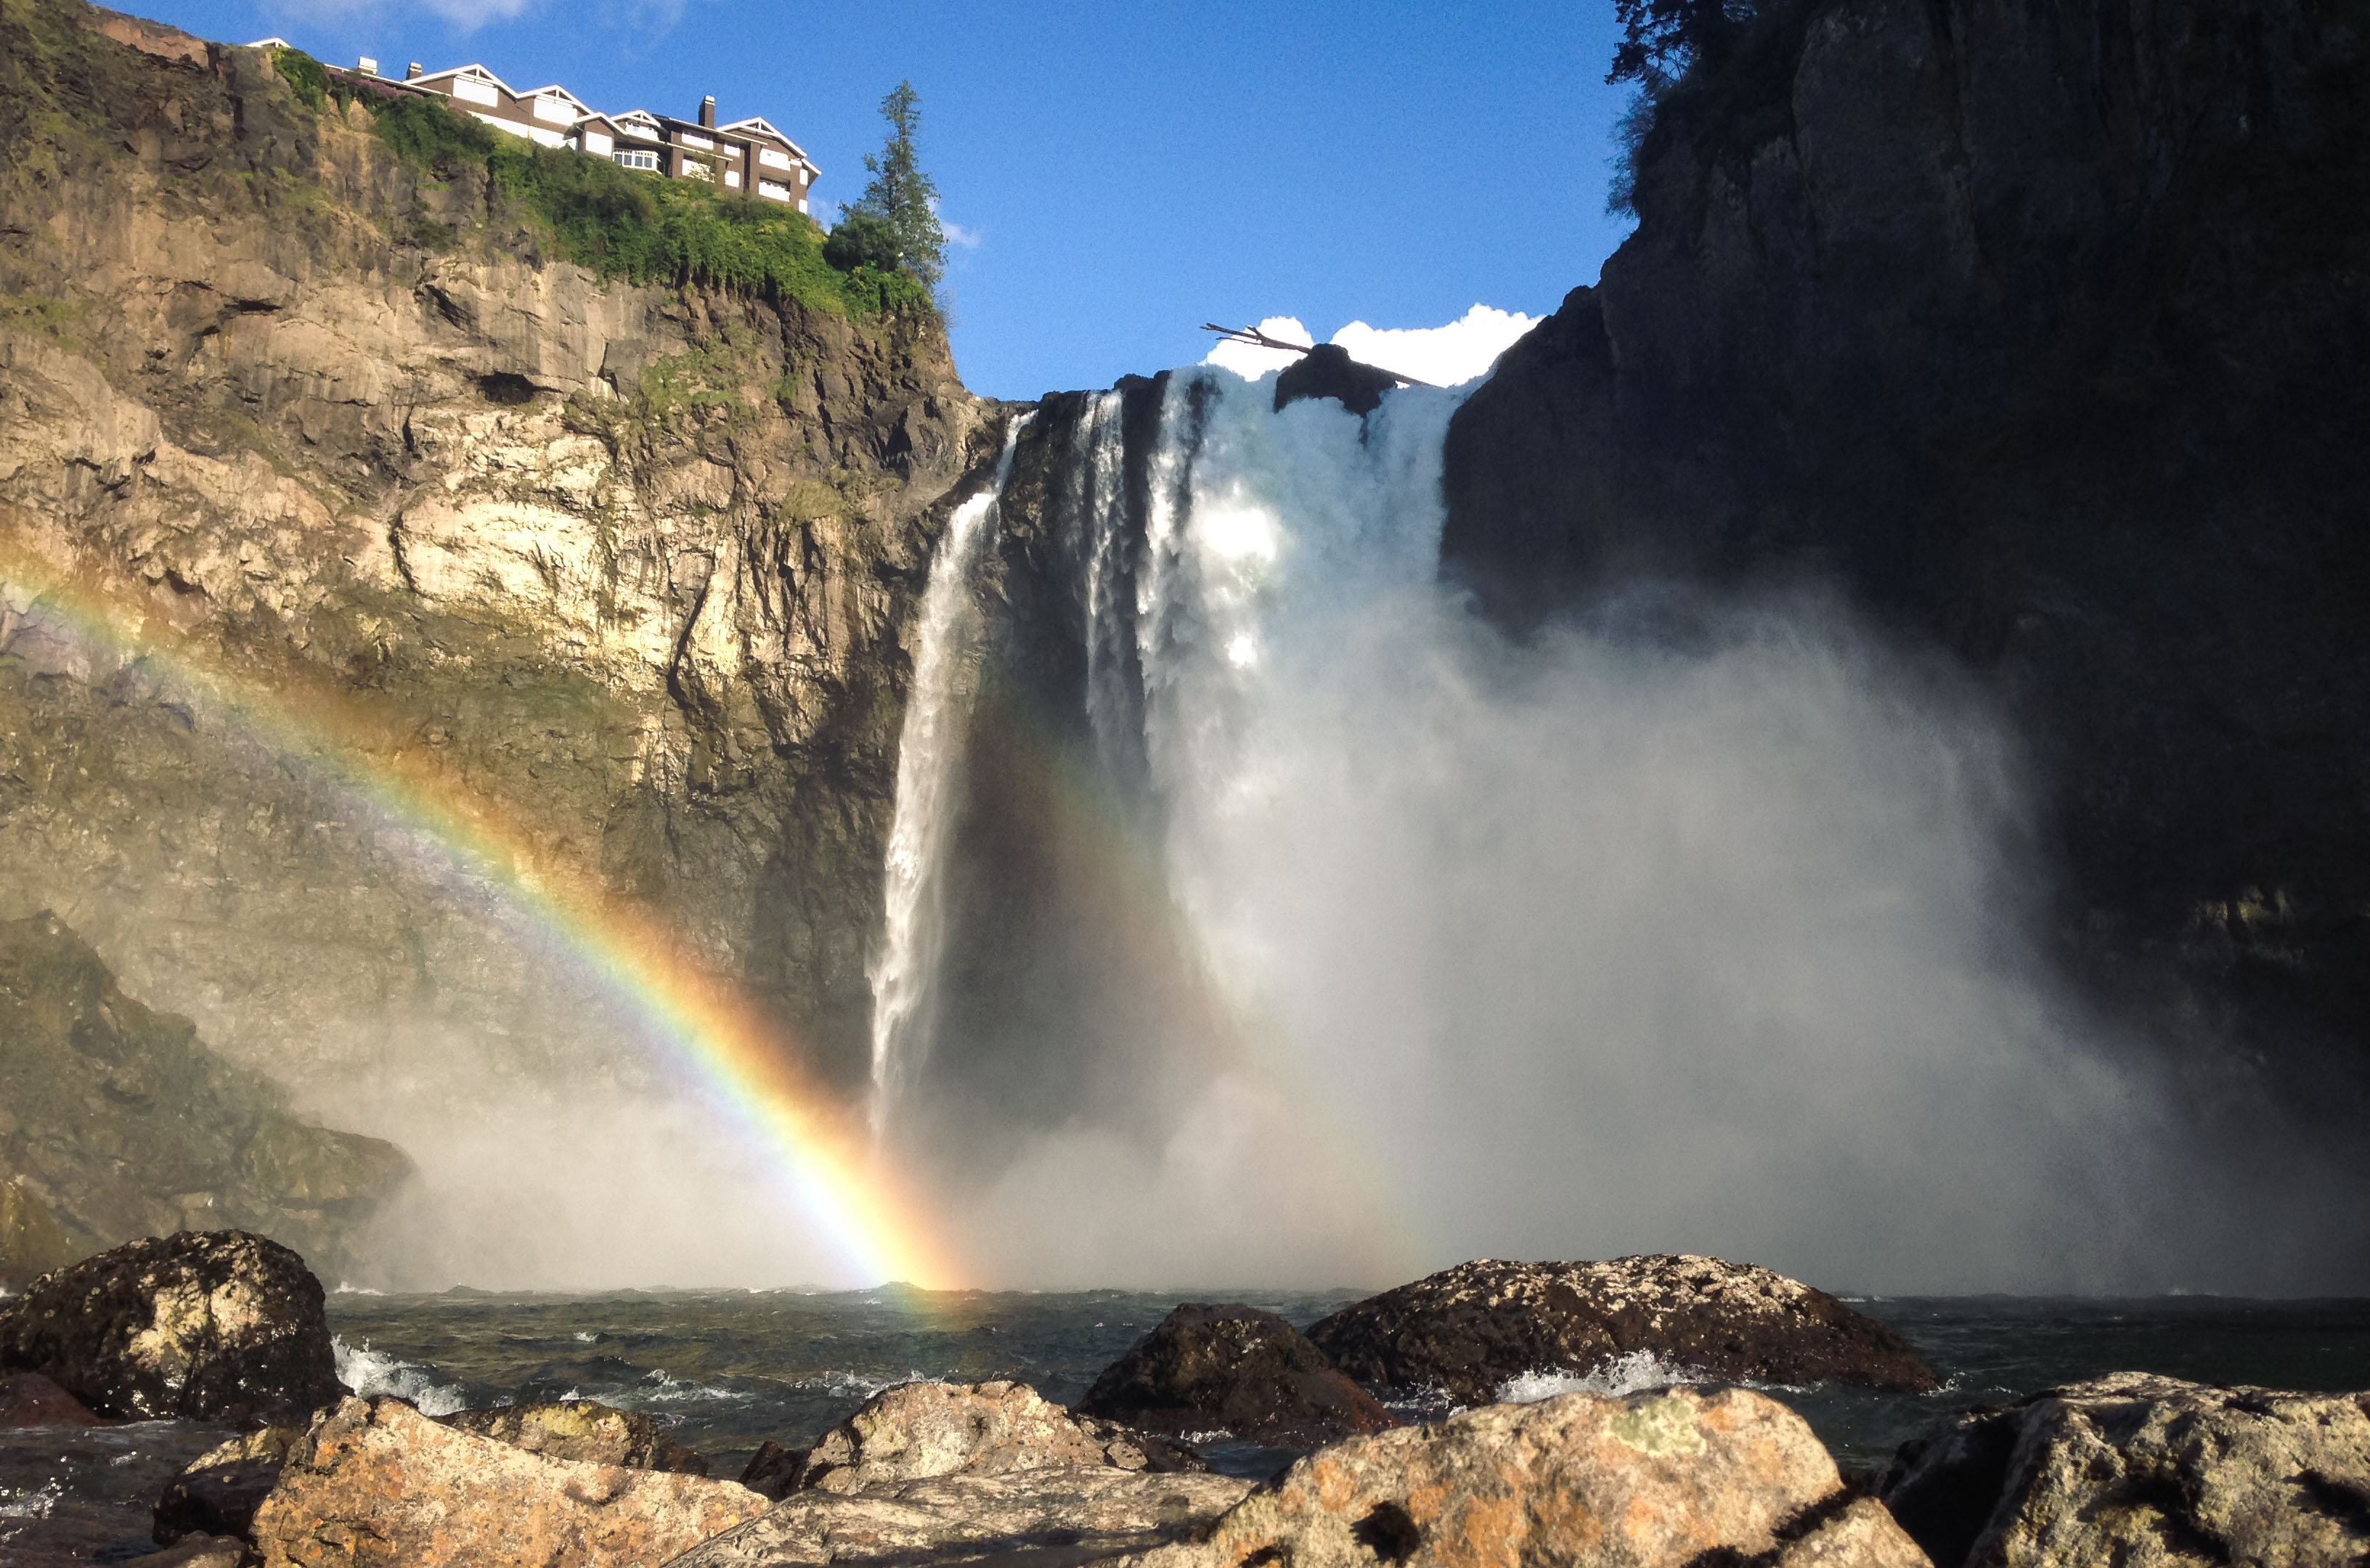 At the base of Snoqualmie Falls, Landscape, Nature, Outdoor, River, HQ Photo